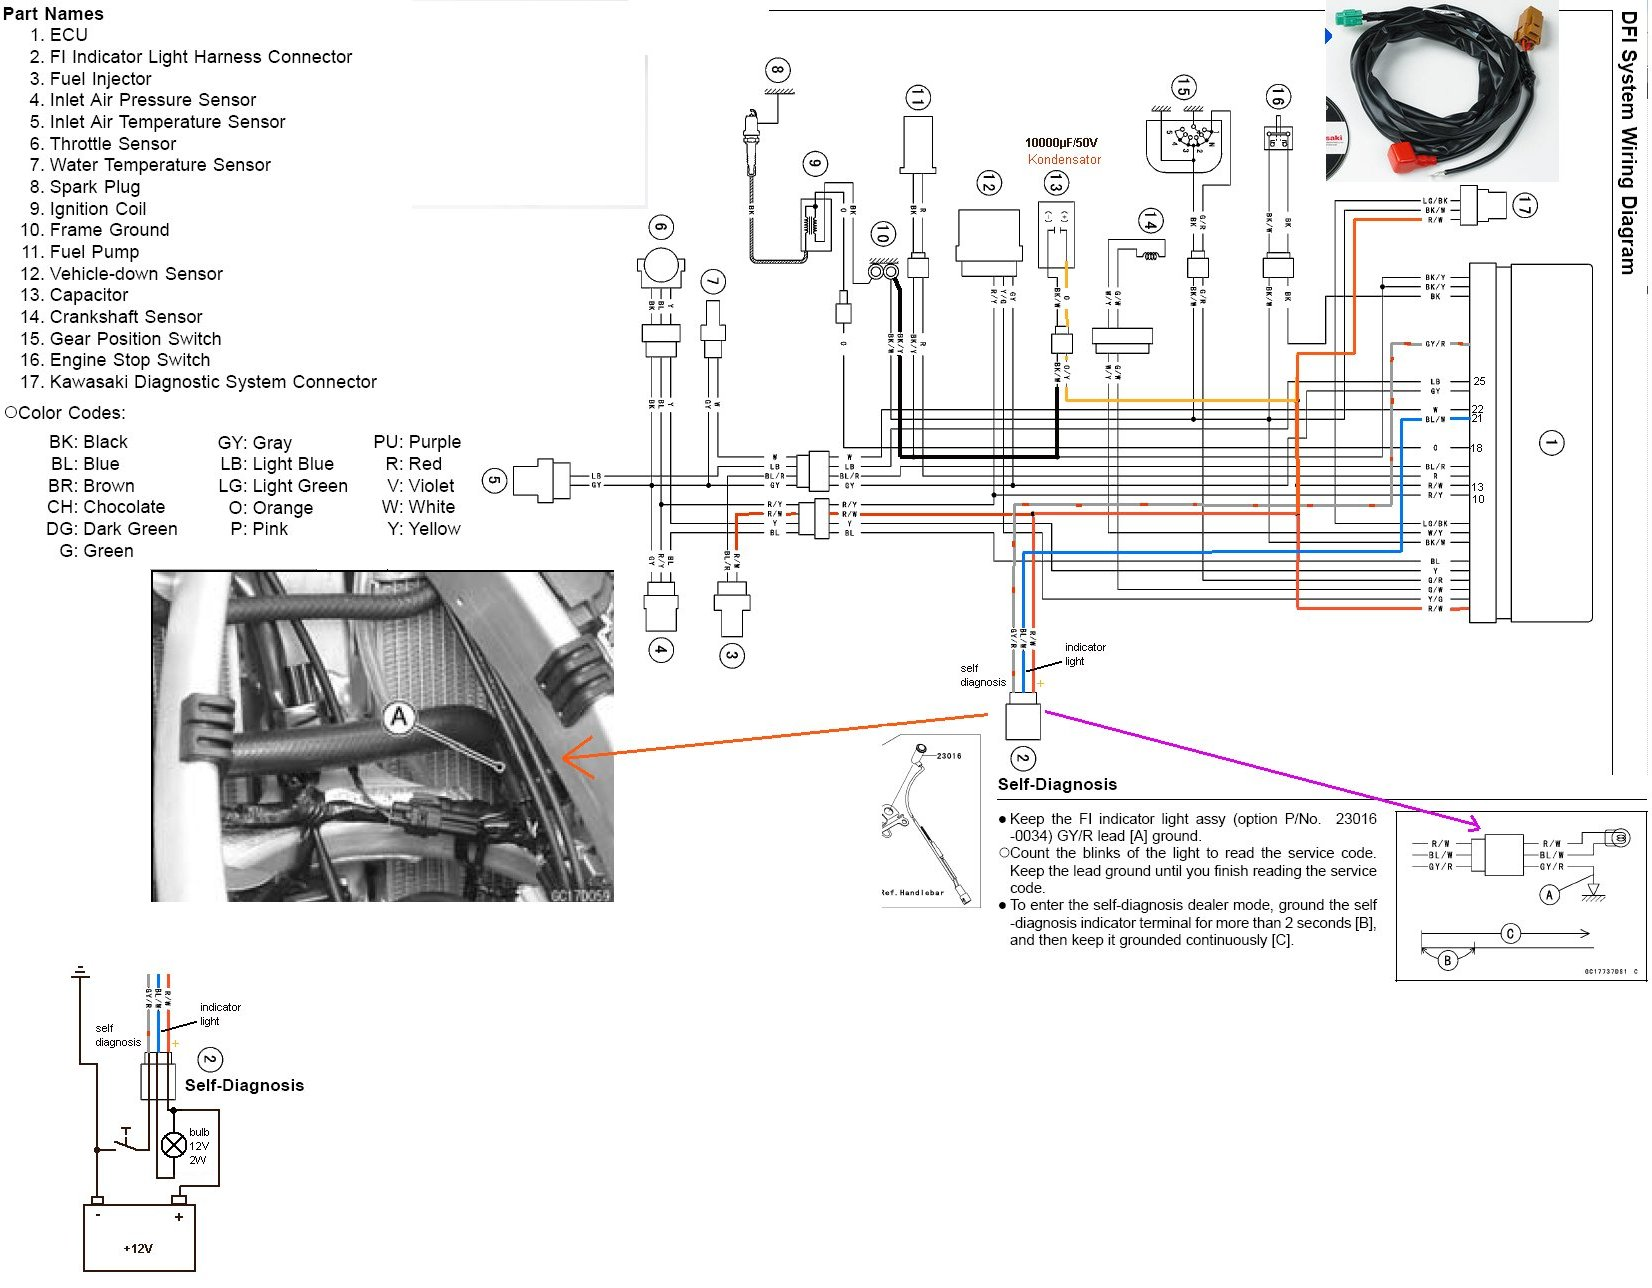 fuse box wiring diagram for 2003 dodge dakota wiring diagram for 2003 kfx 2009 kx450f big problem please help! - kx450f - thumpertalk #14